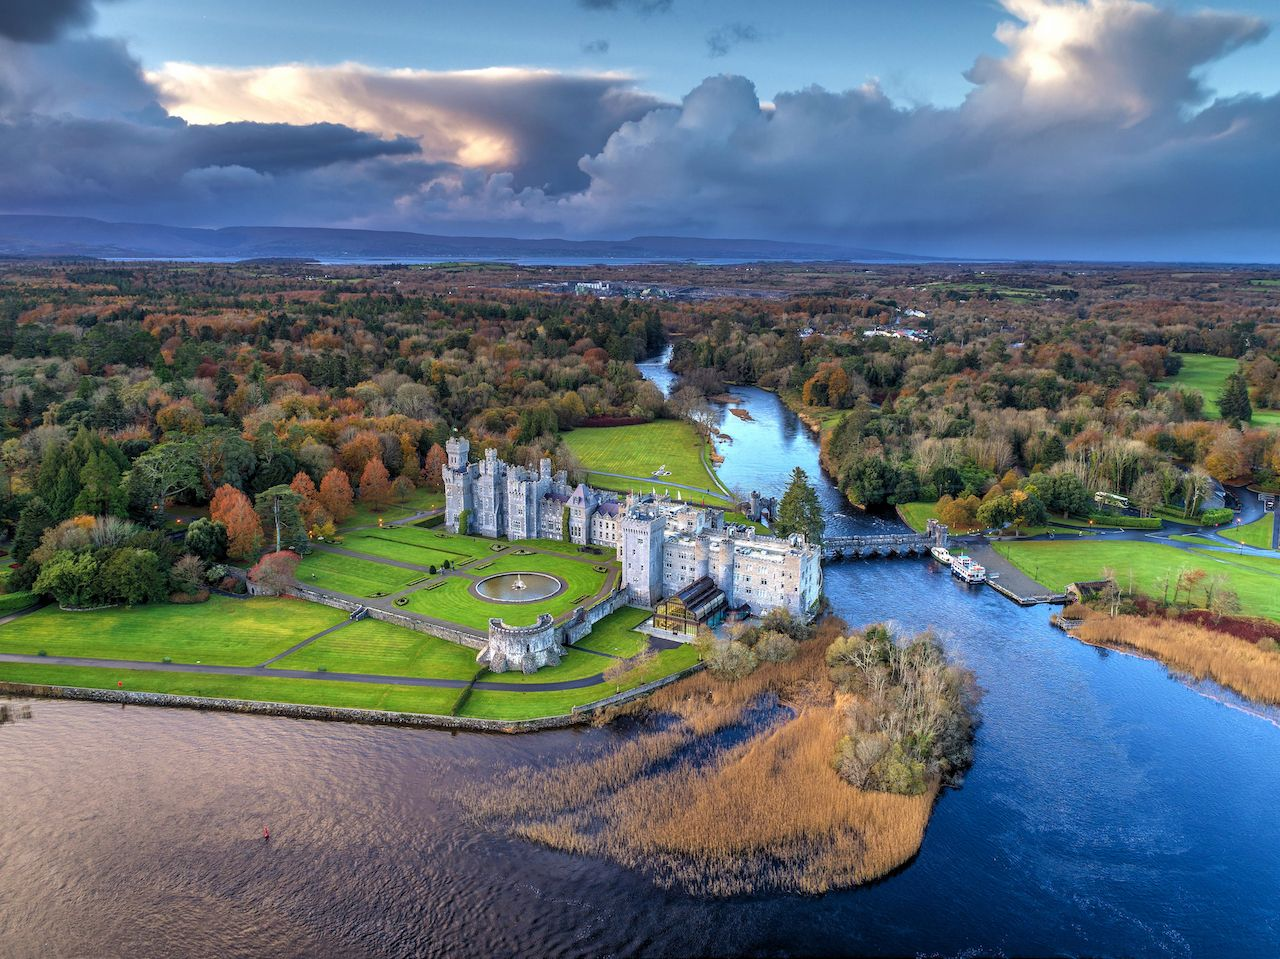 Luxury Ashford Castle and Gardens from above